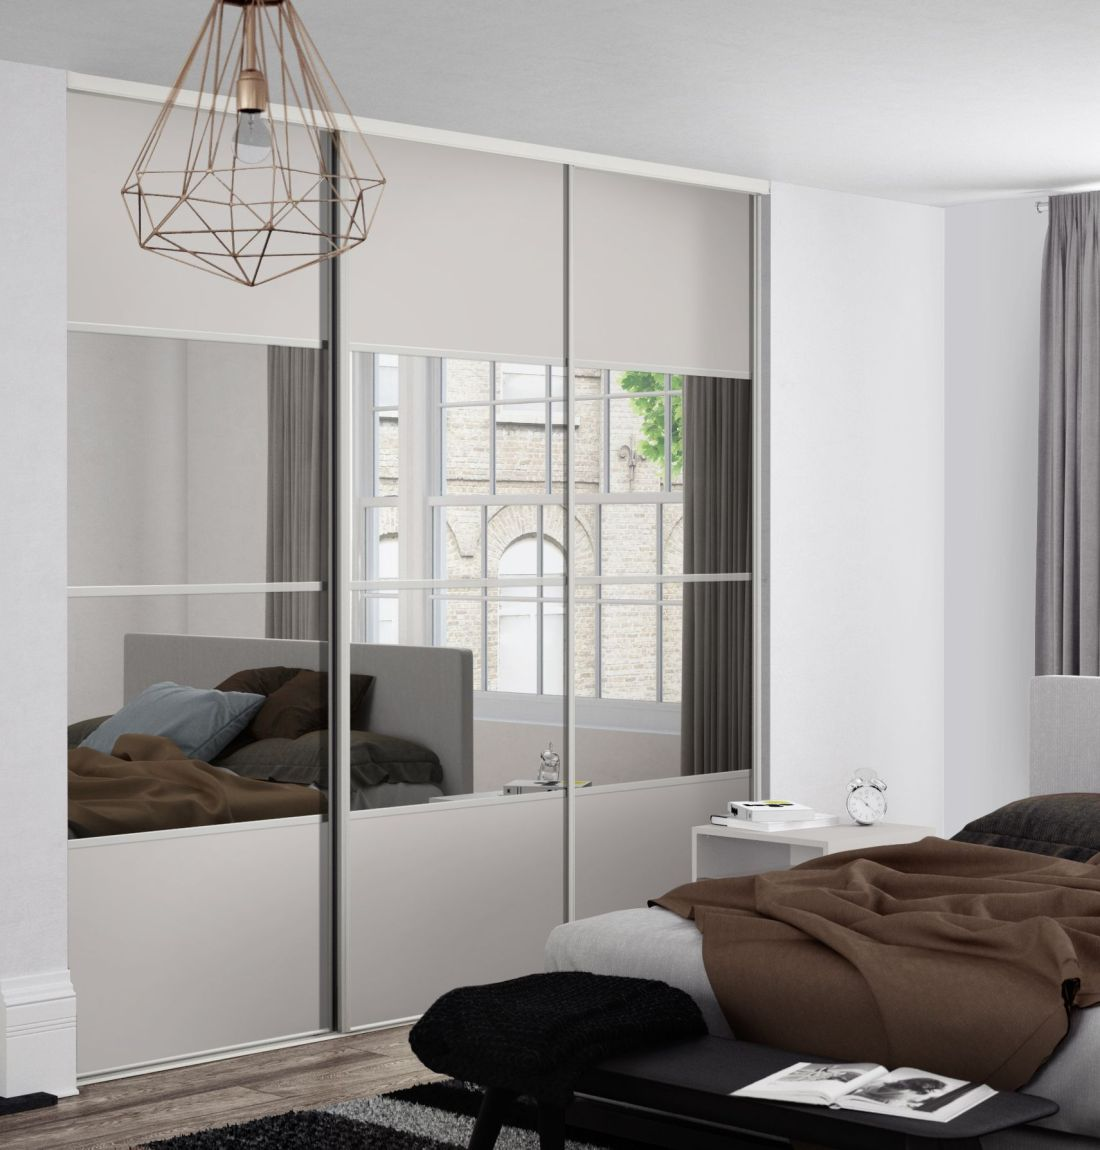 Classic 4 panel sliding wardrobe doors in cashmere and